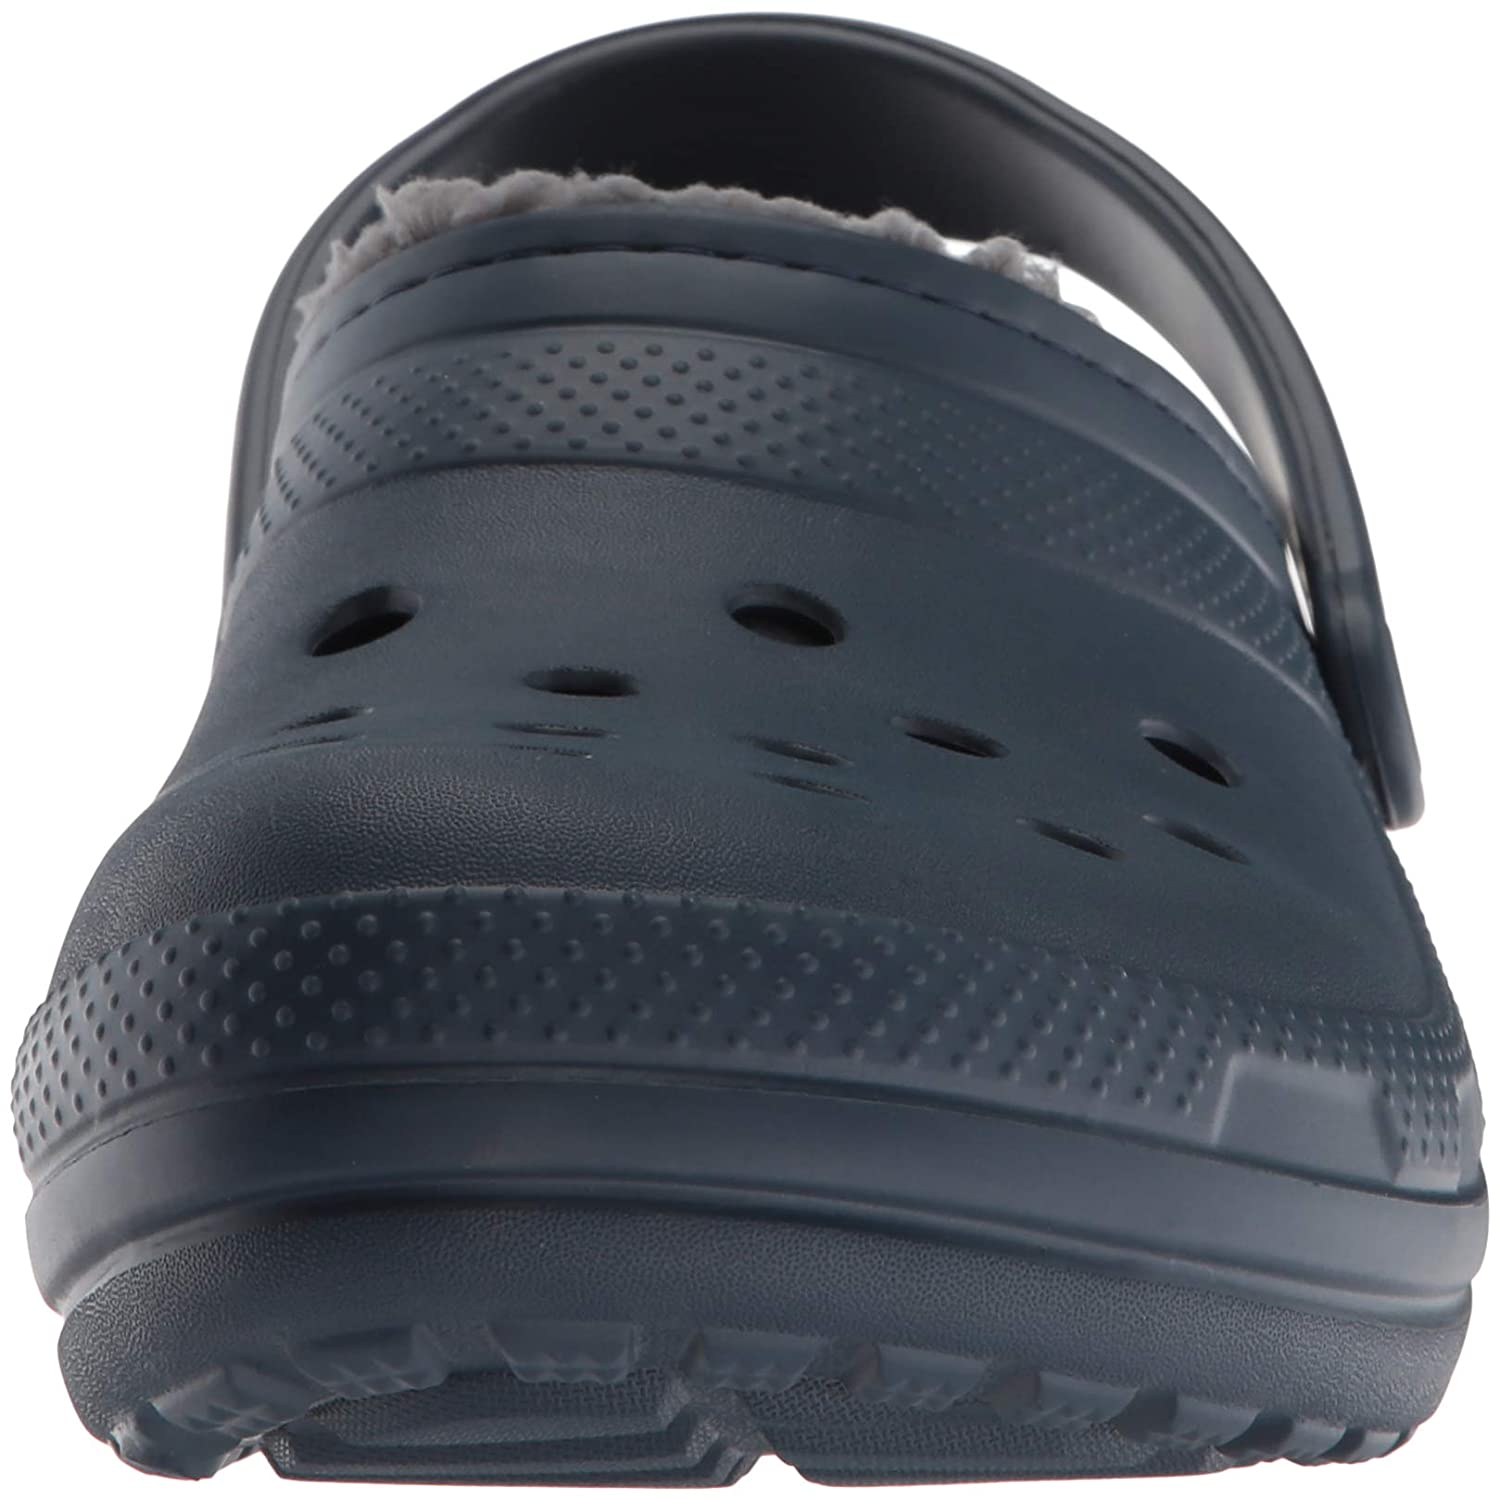 beb544d4d2c793 Amazon.com | Crocs Men's and Women's Classic Fuzz Lined Clog Shoe | Great  Indoor or Outdoor Warm and Fuzzy Slipper Option | Mules & Clogs